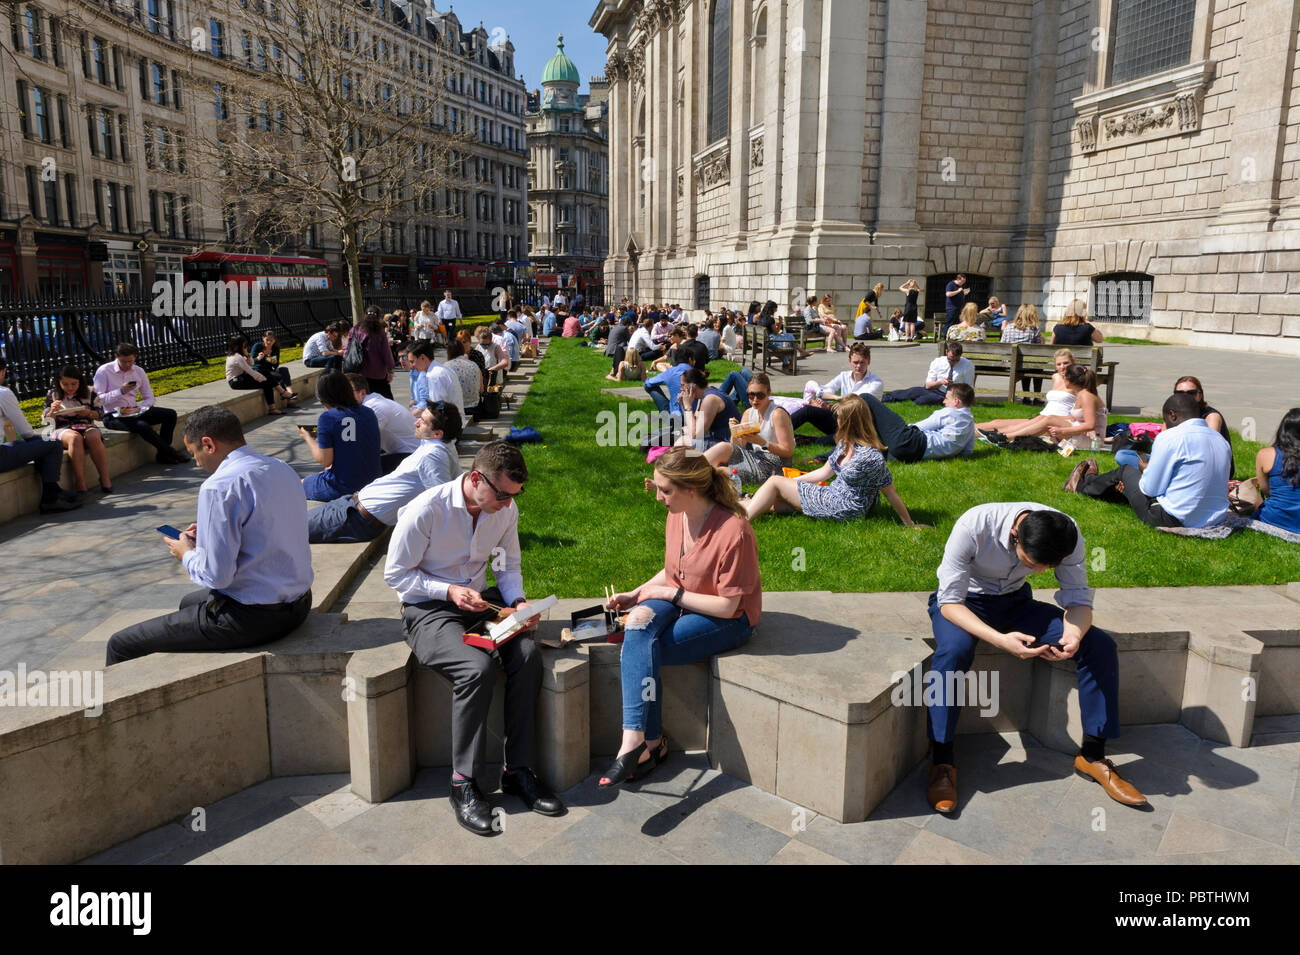 People sitting outside St Paul's Cathedral and enjoying the hot weather, City of London, England, United Kingdom - Stock Image